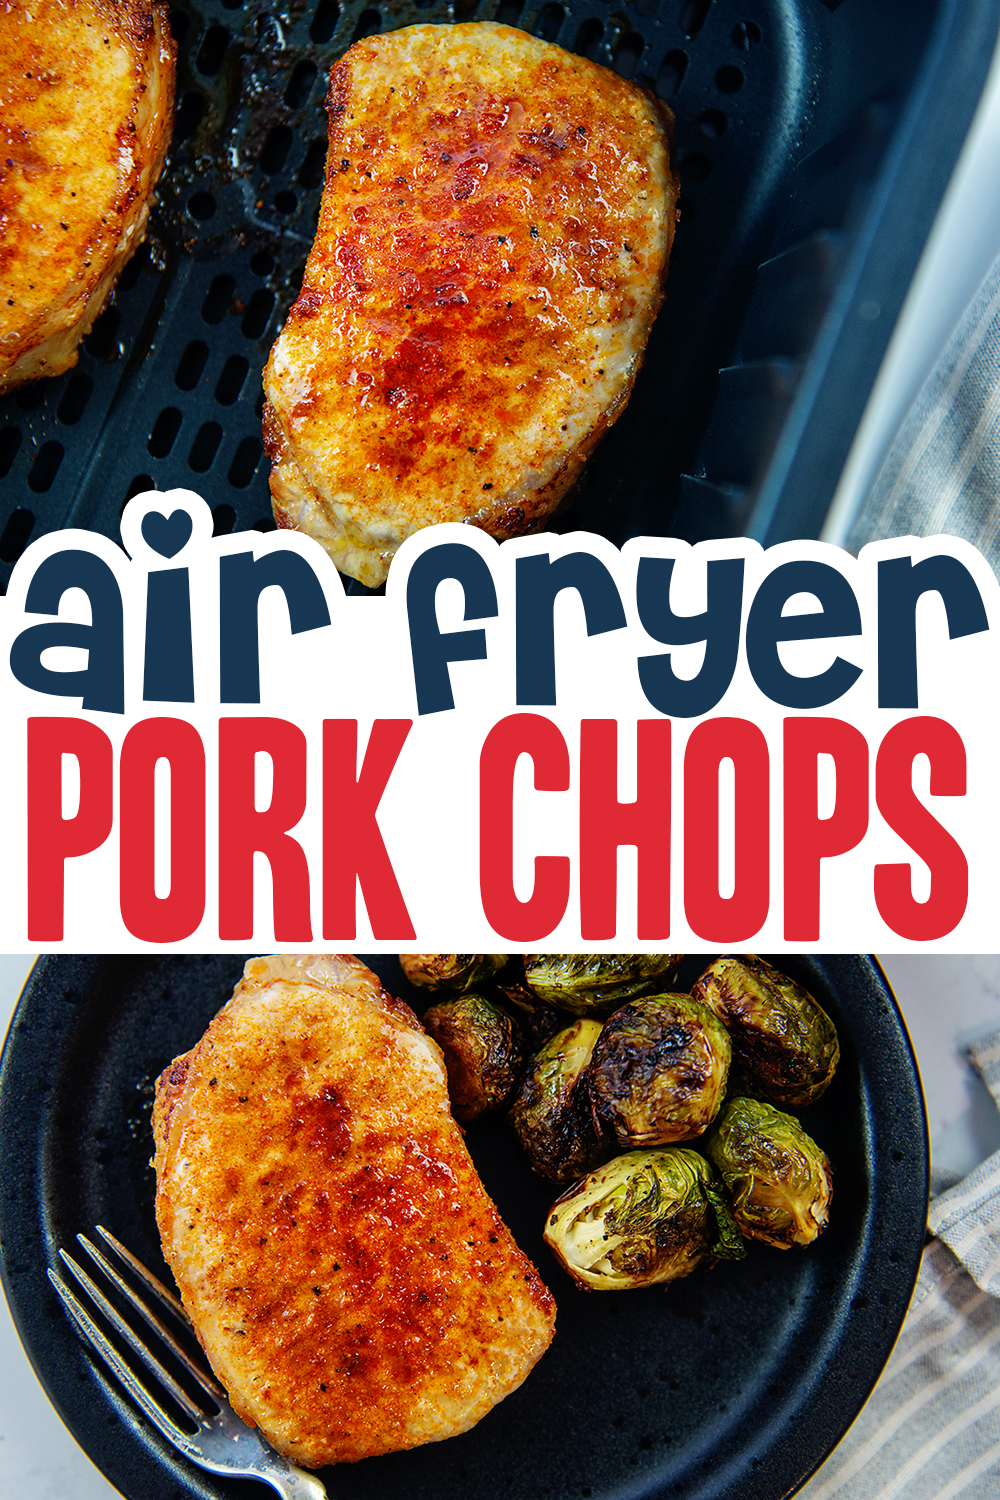 These pork chops in the air fryer are easy to make and stay out of the way in your air fryer while you cook the rest of your meal!  The pork chops are wonderfully tender and juicy!